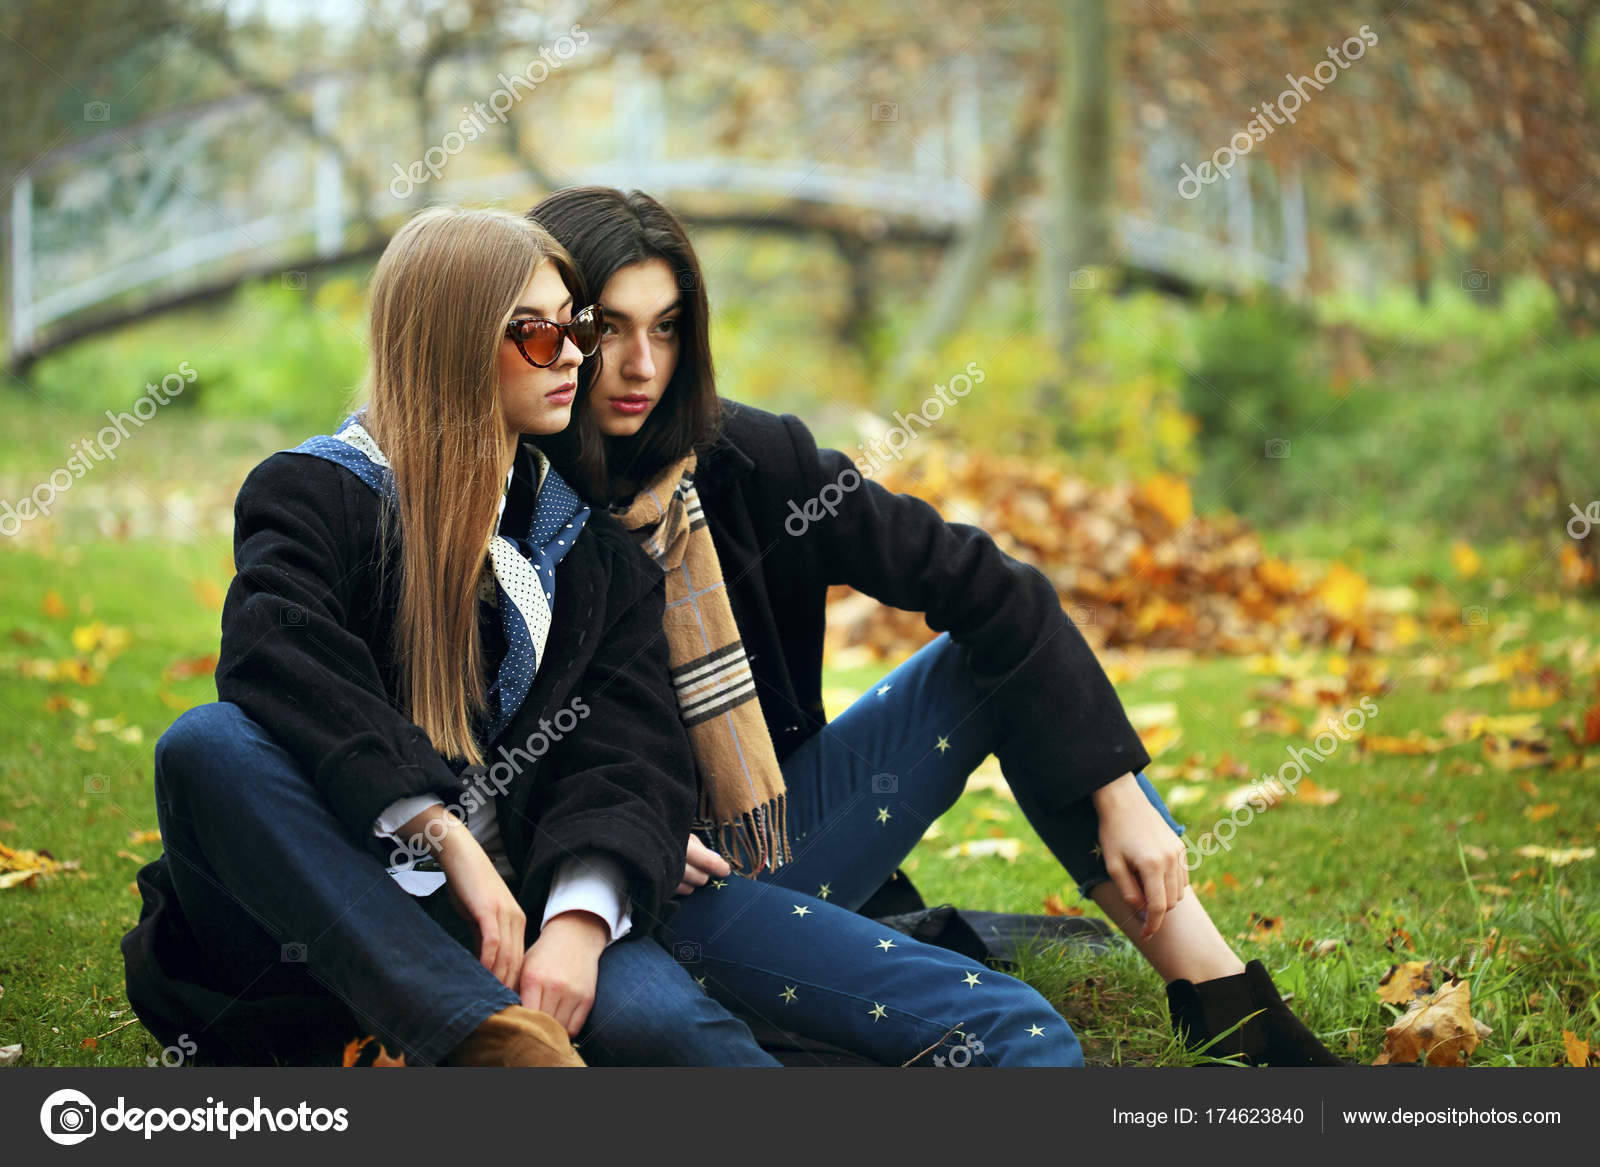 f9b421a96d1 Outdoors lifestyle fashion portrait of two sexy girls friends